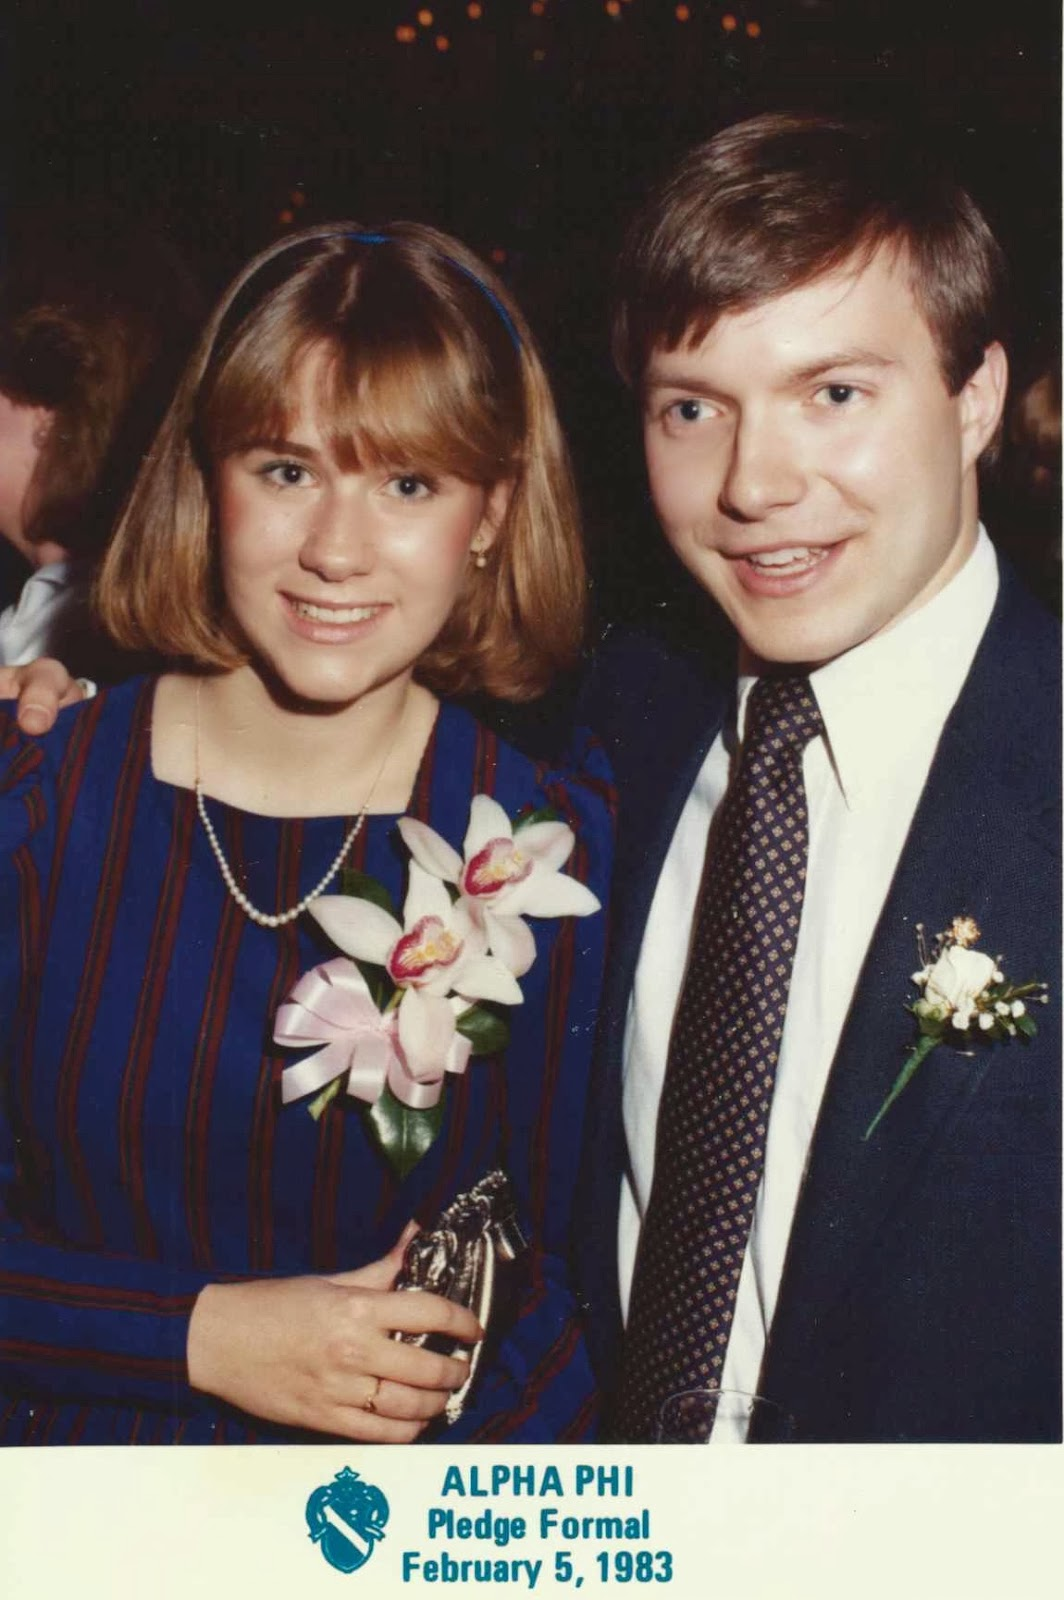 Alpha Phi Pledge Formal, Winey Mom and Winey Hubby, 1983